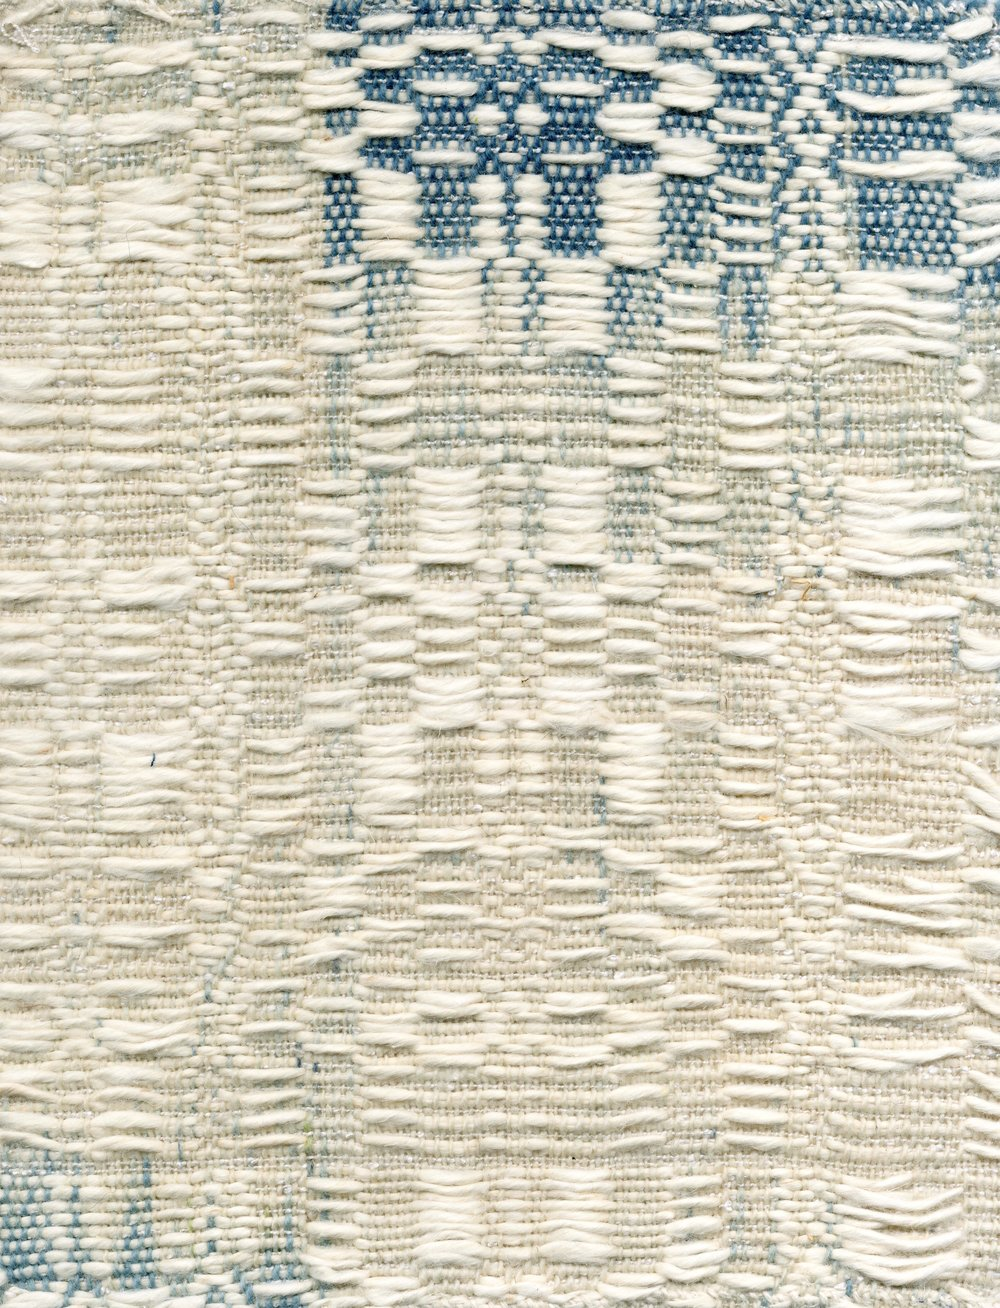 Wool & cotton, ikat resist dyed, 2017. Woven by Rachel Snack.